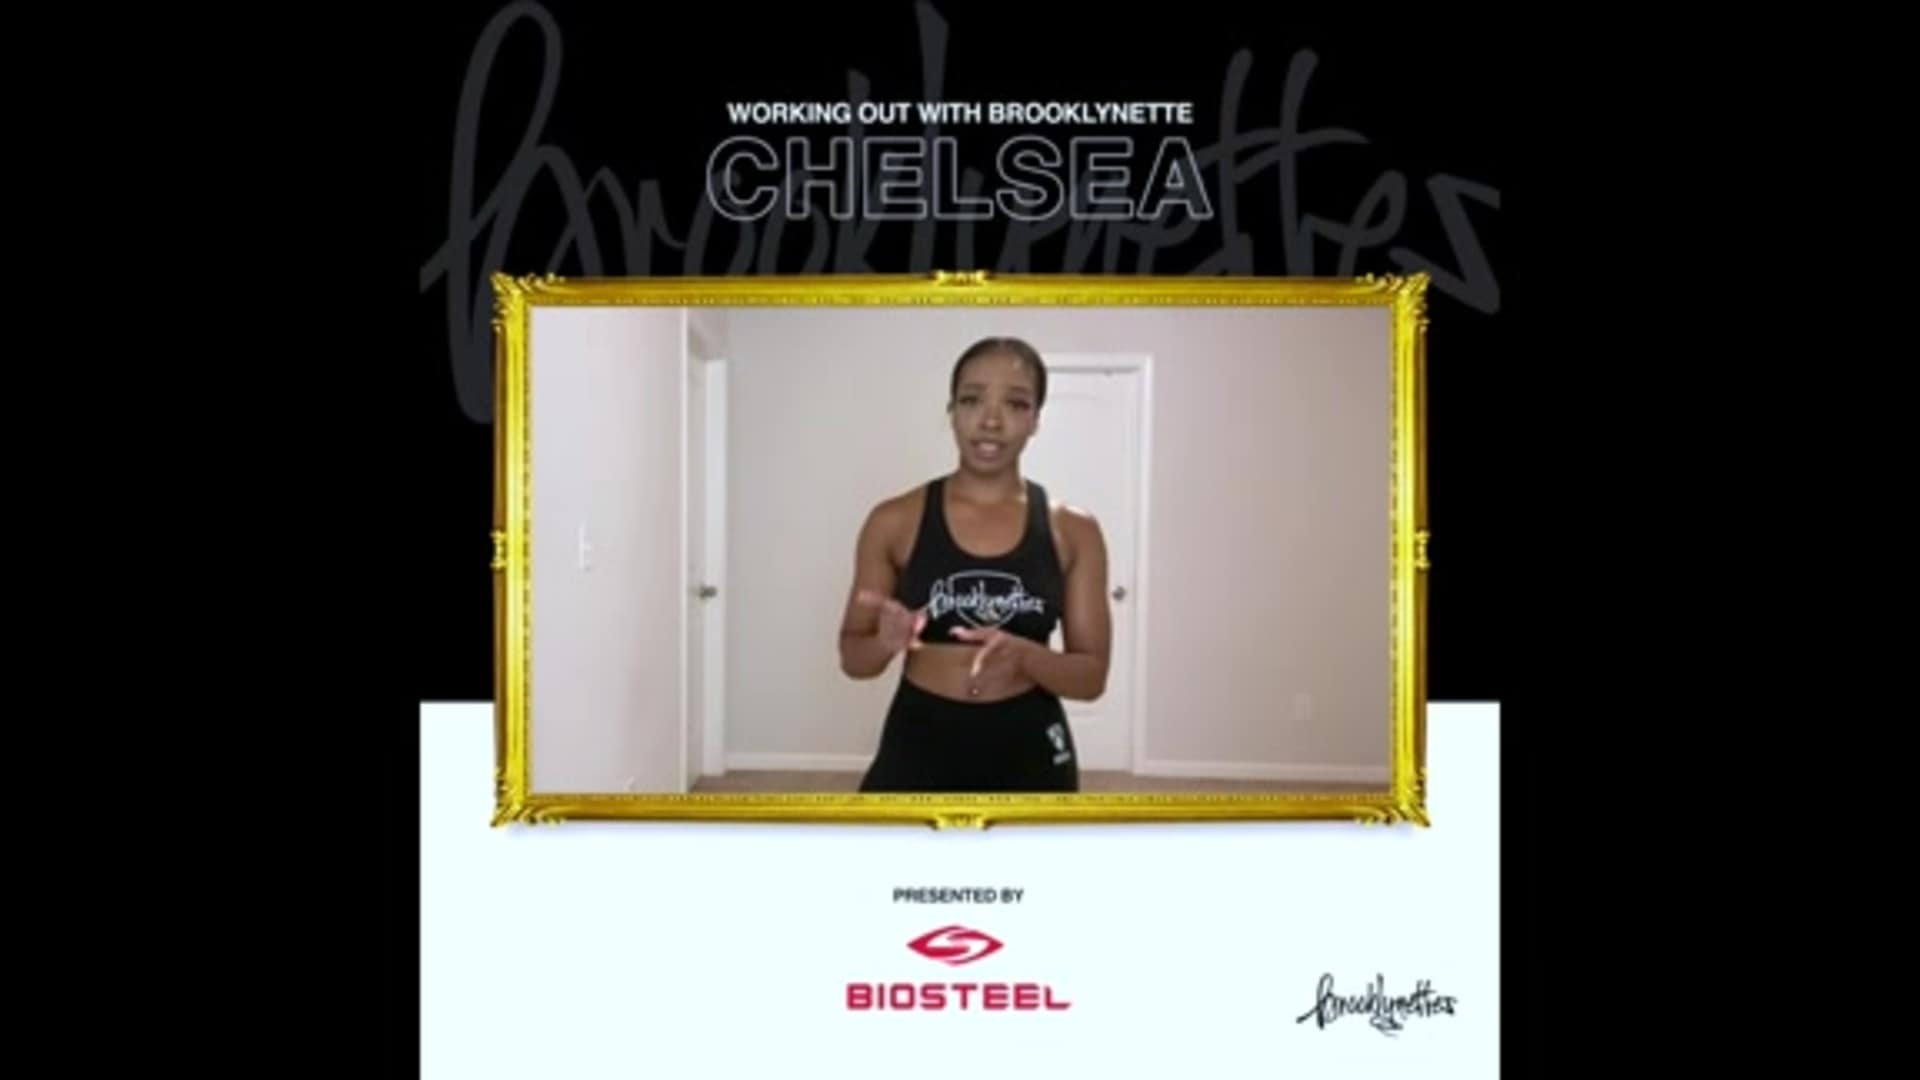 Working Out with the Brooklynette presented by Biosteele